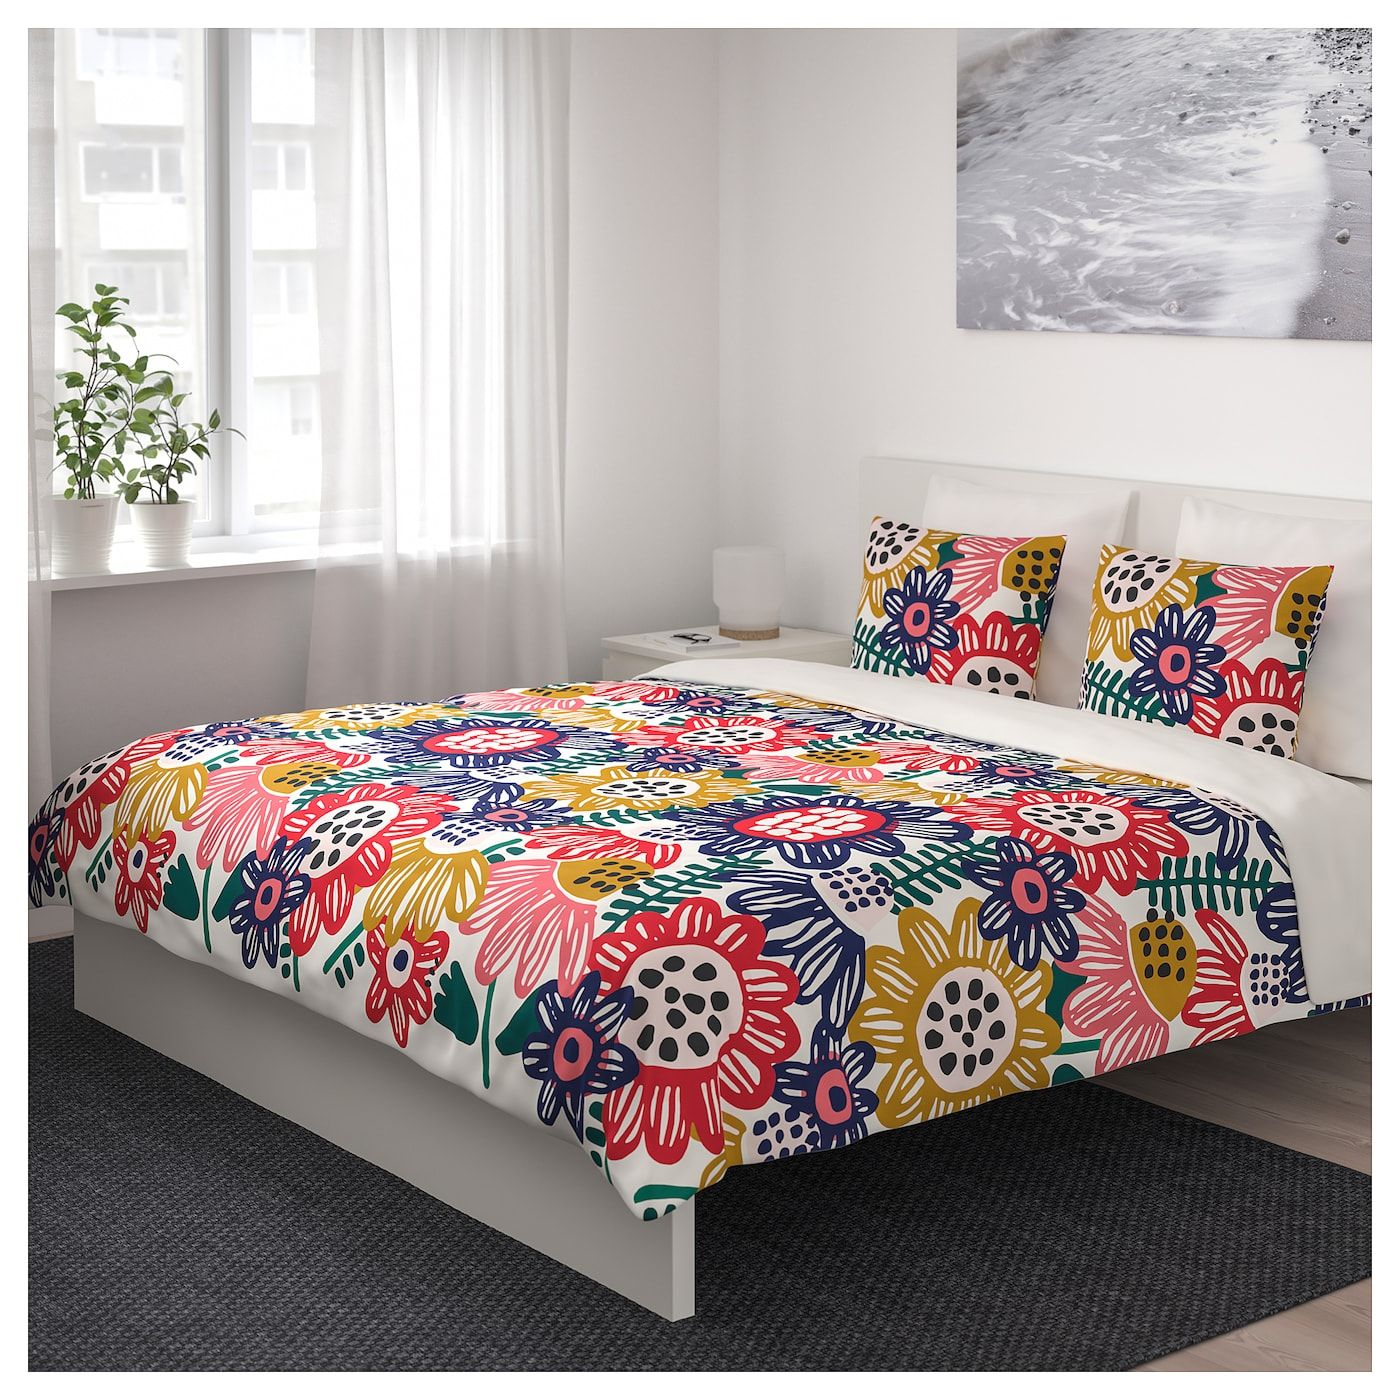 Ikea Alvine Kvist Black And White Floral Double Bed Sheets Duvet Want Must Need Designerbedsheets Bed Linens Luxury Bed Linen Design Double Bed Sheets